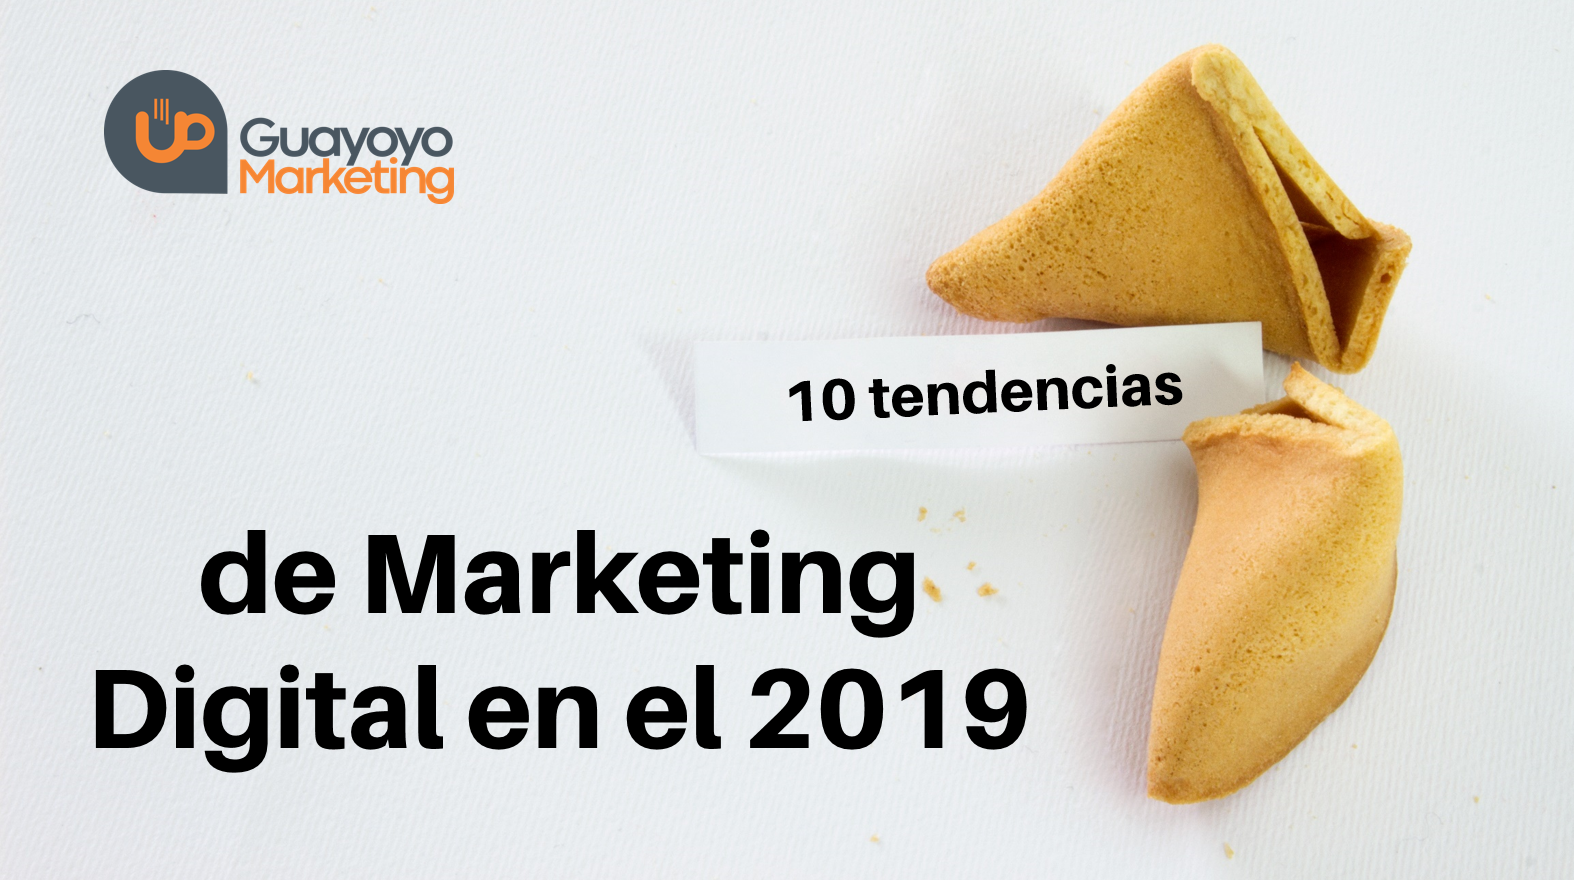 10 tendencias de Marketing Digital en el 2019